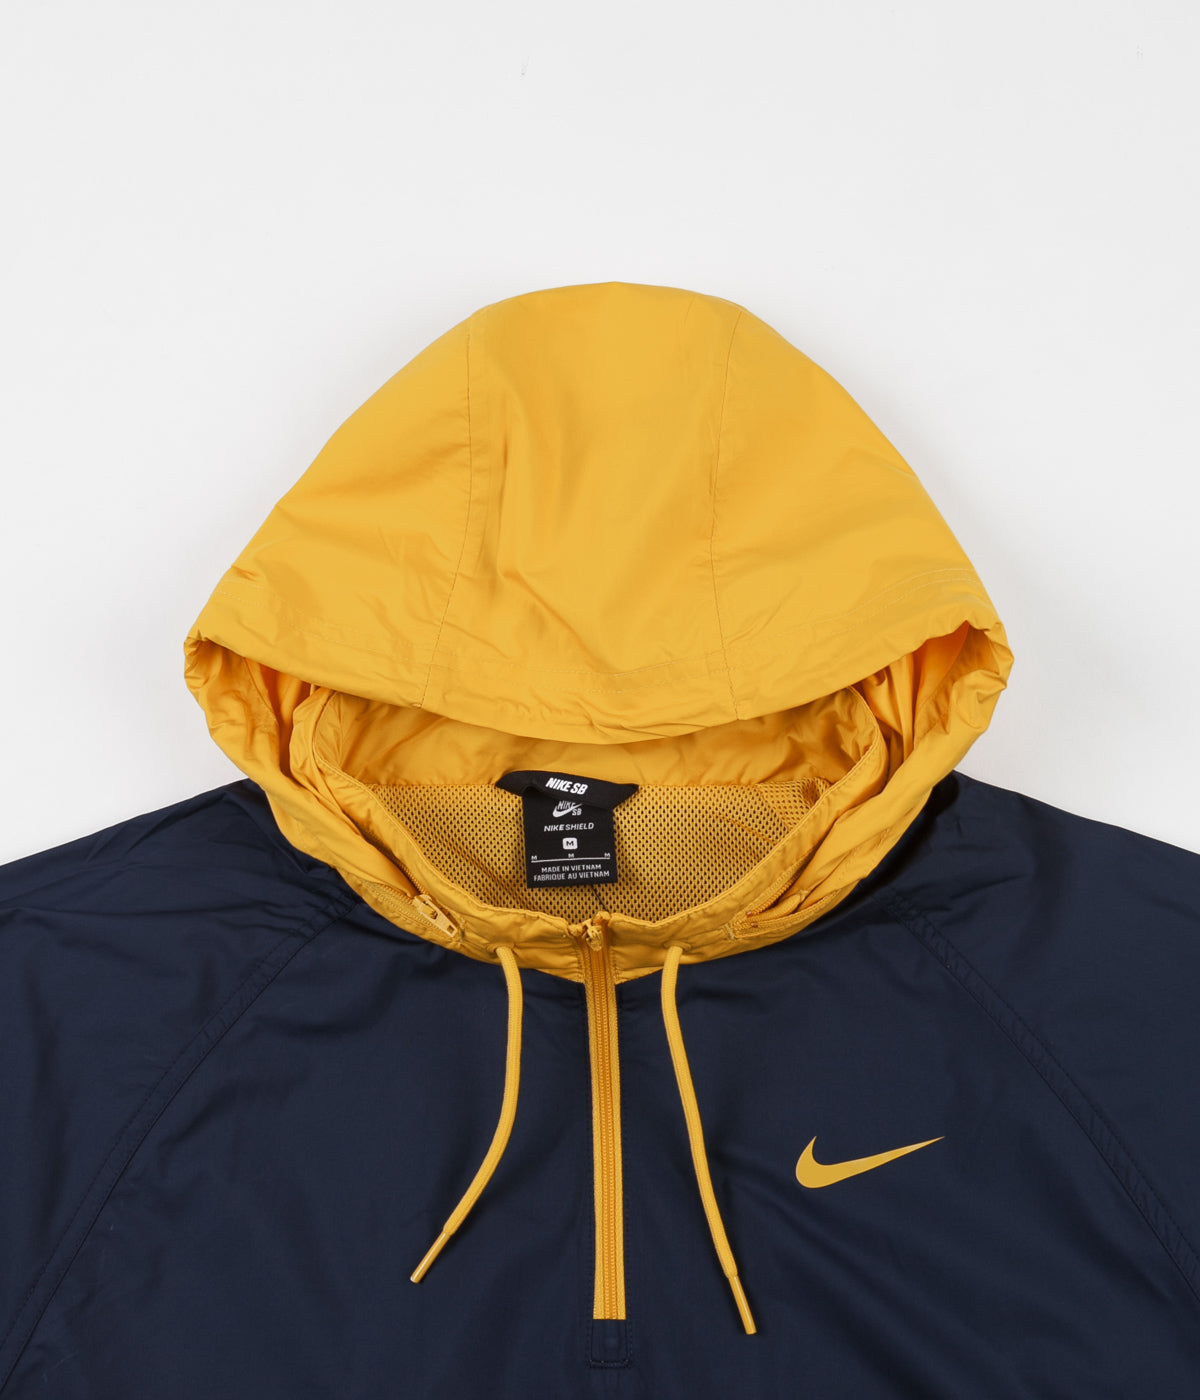 Nike SB Shield Seasonal Jacket - Obsidian / Dark Sulfur / Dark Sulfur